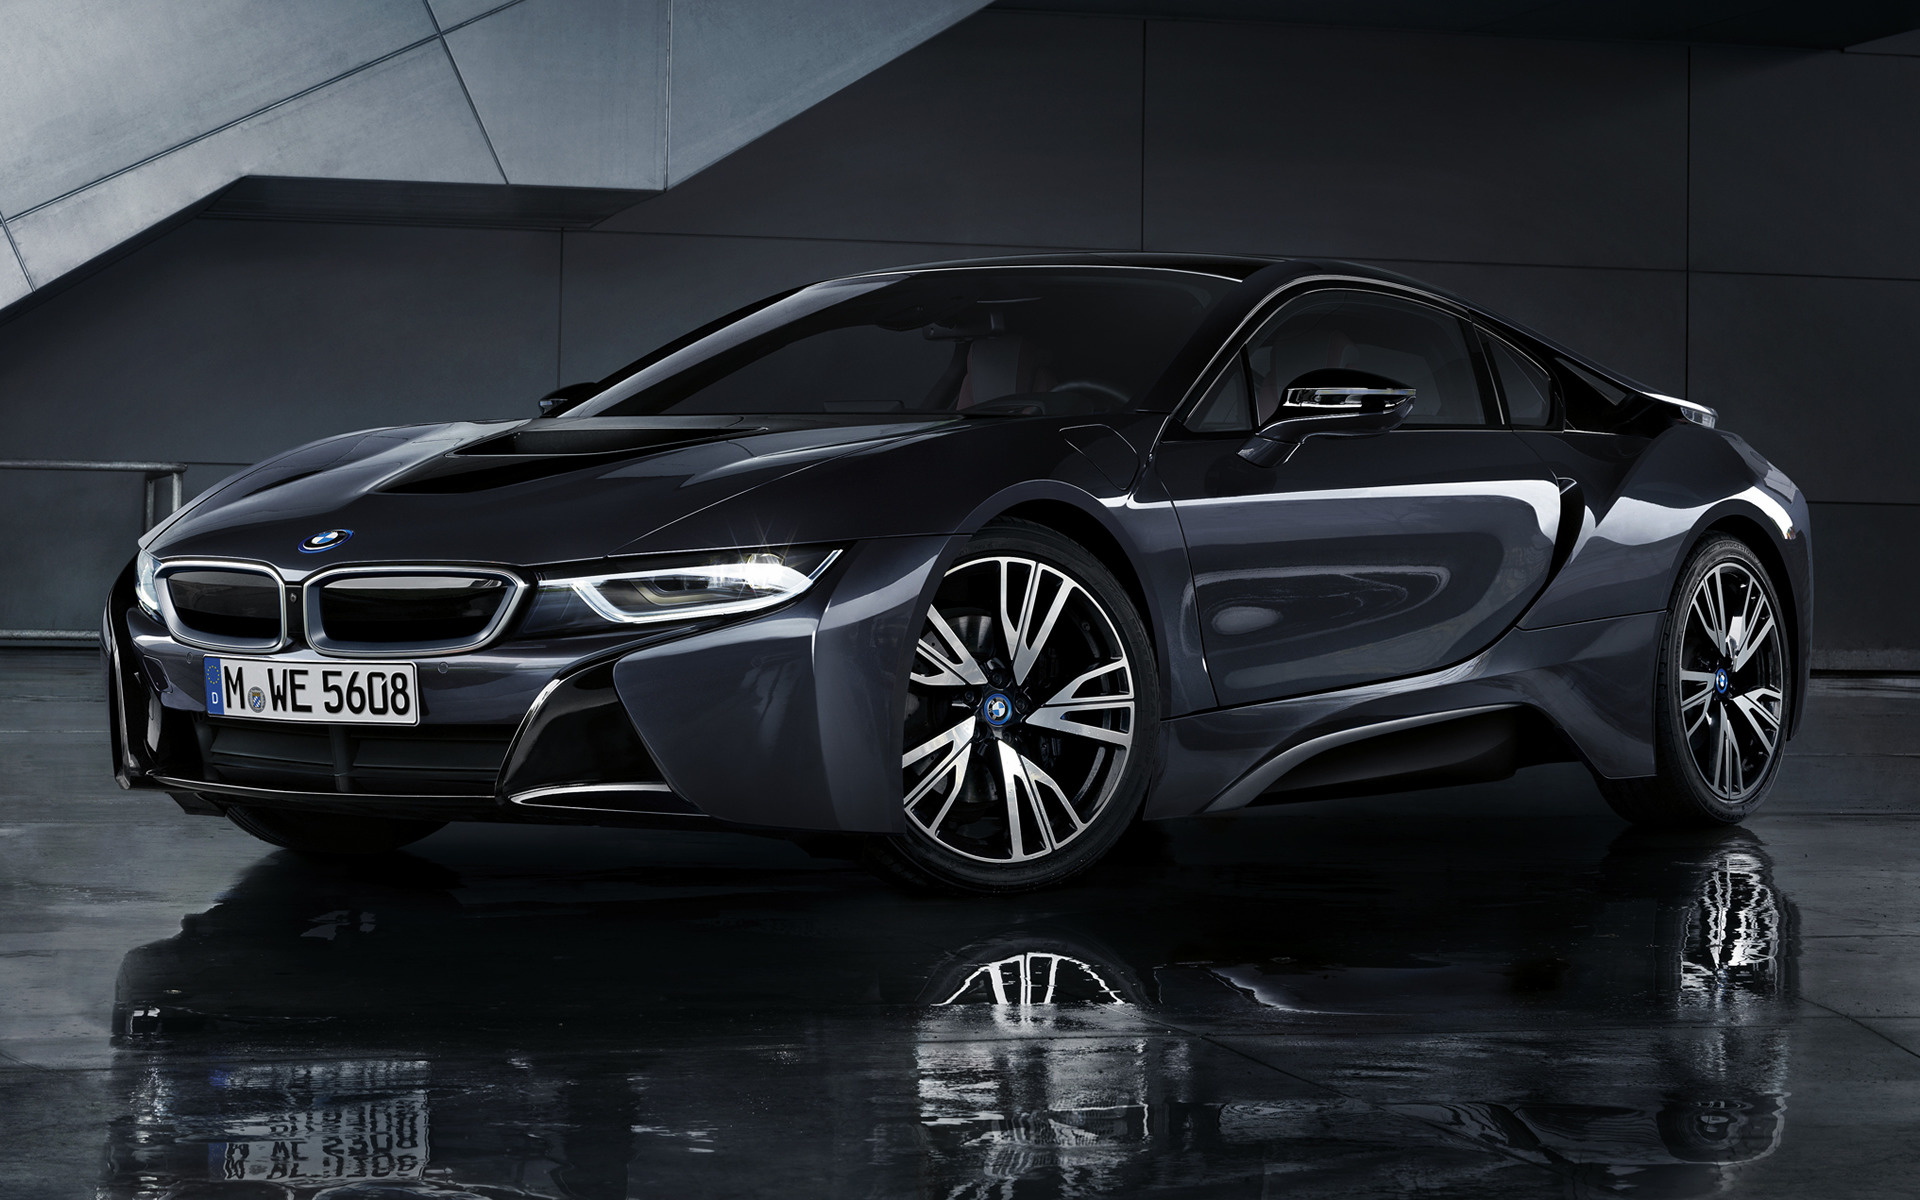 2016 BMW i8 Protonic Dark Silver Edition - Wallpapers and ...